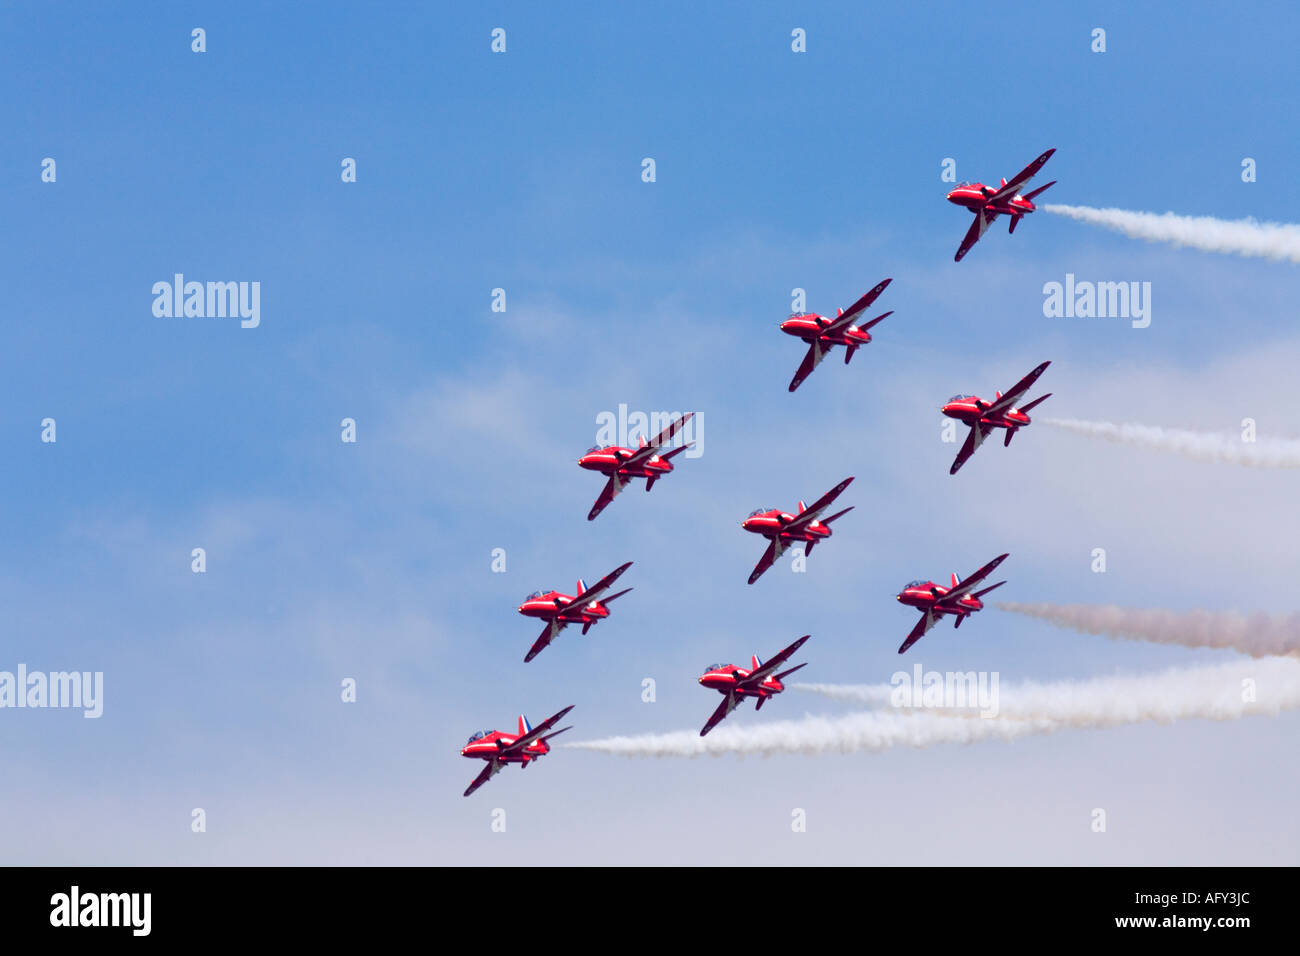 Red Arrows Royal Air Force RAF aerobatic display team in Hawk trainer aircraft at Fairford international air show 2006 display - Stock Image